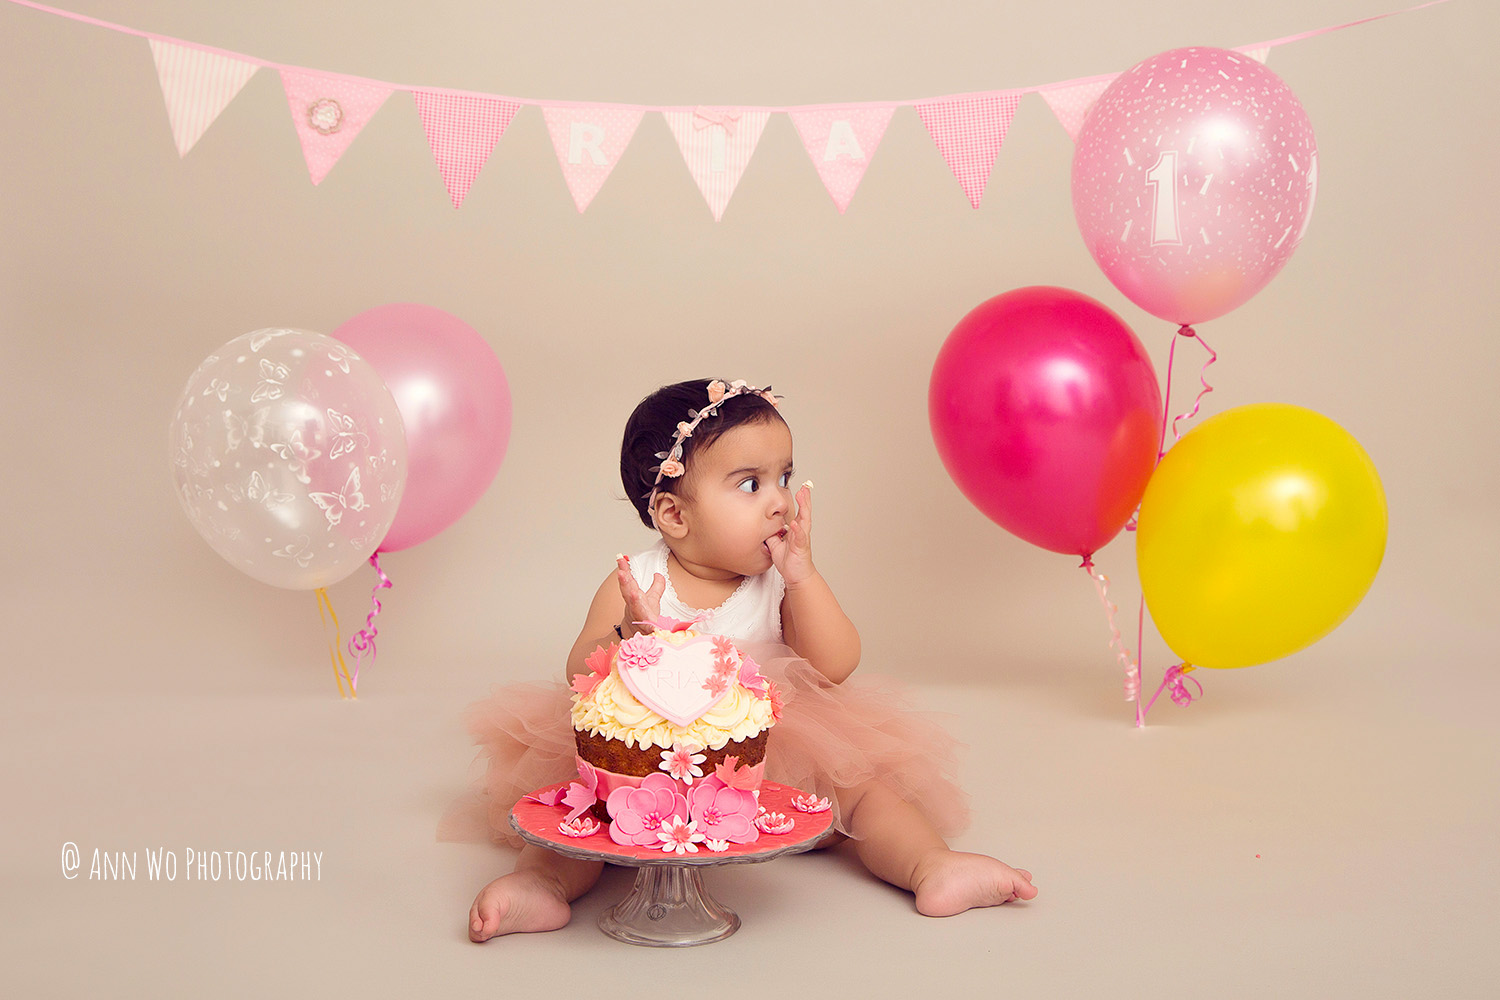 cake-smash-ria-london-baby-photographer11.jpg